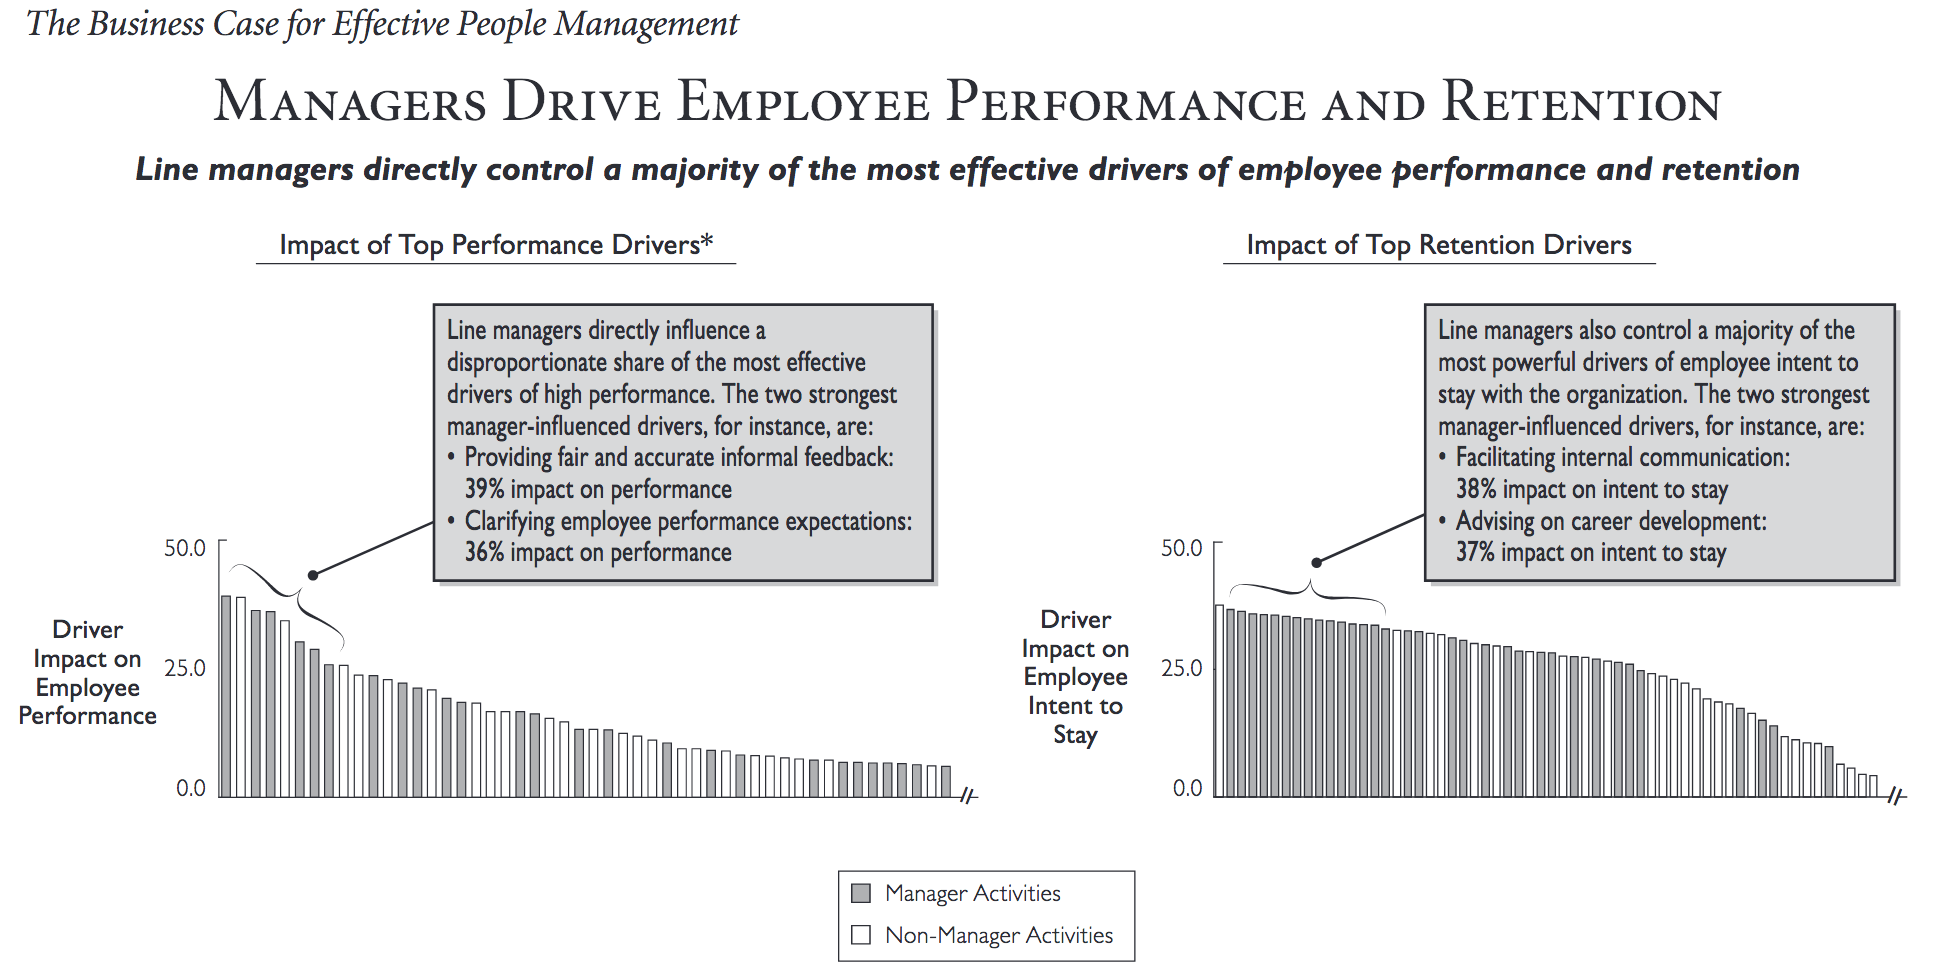 Managers Drive Employee Performance and Retention